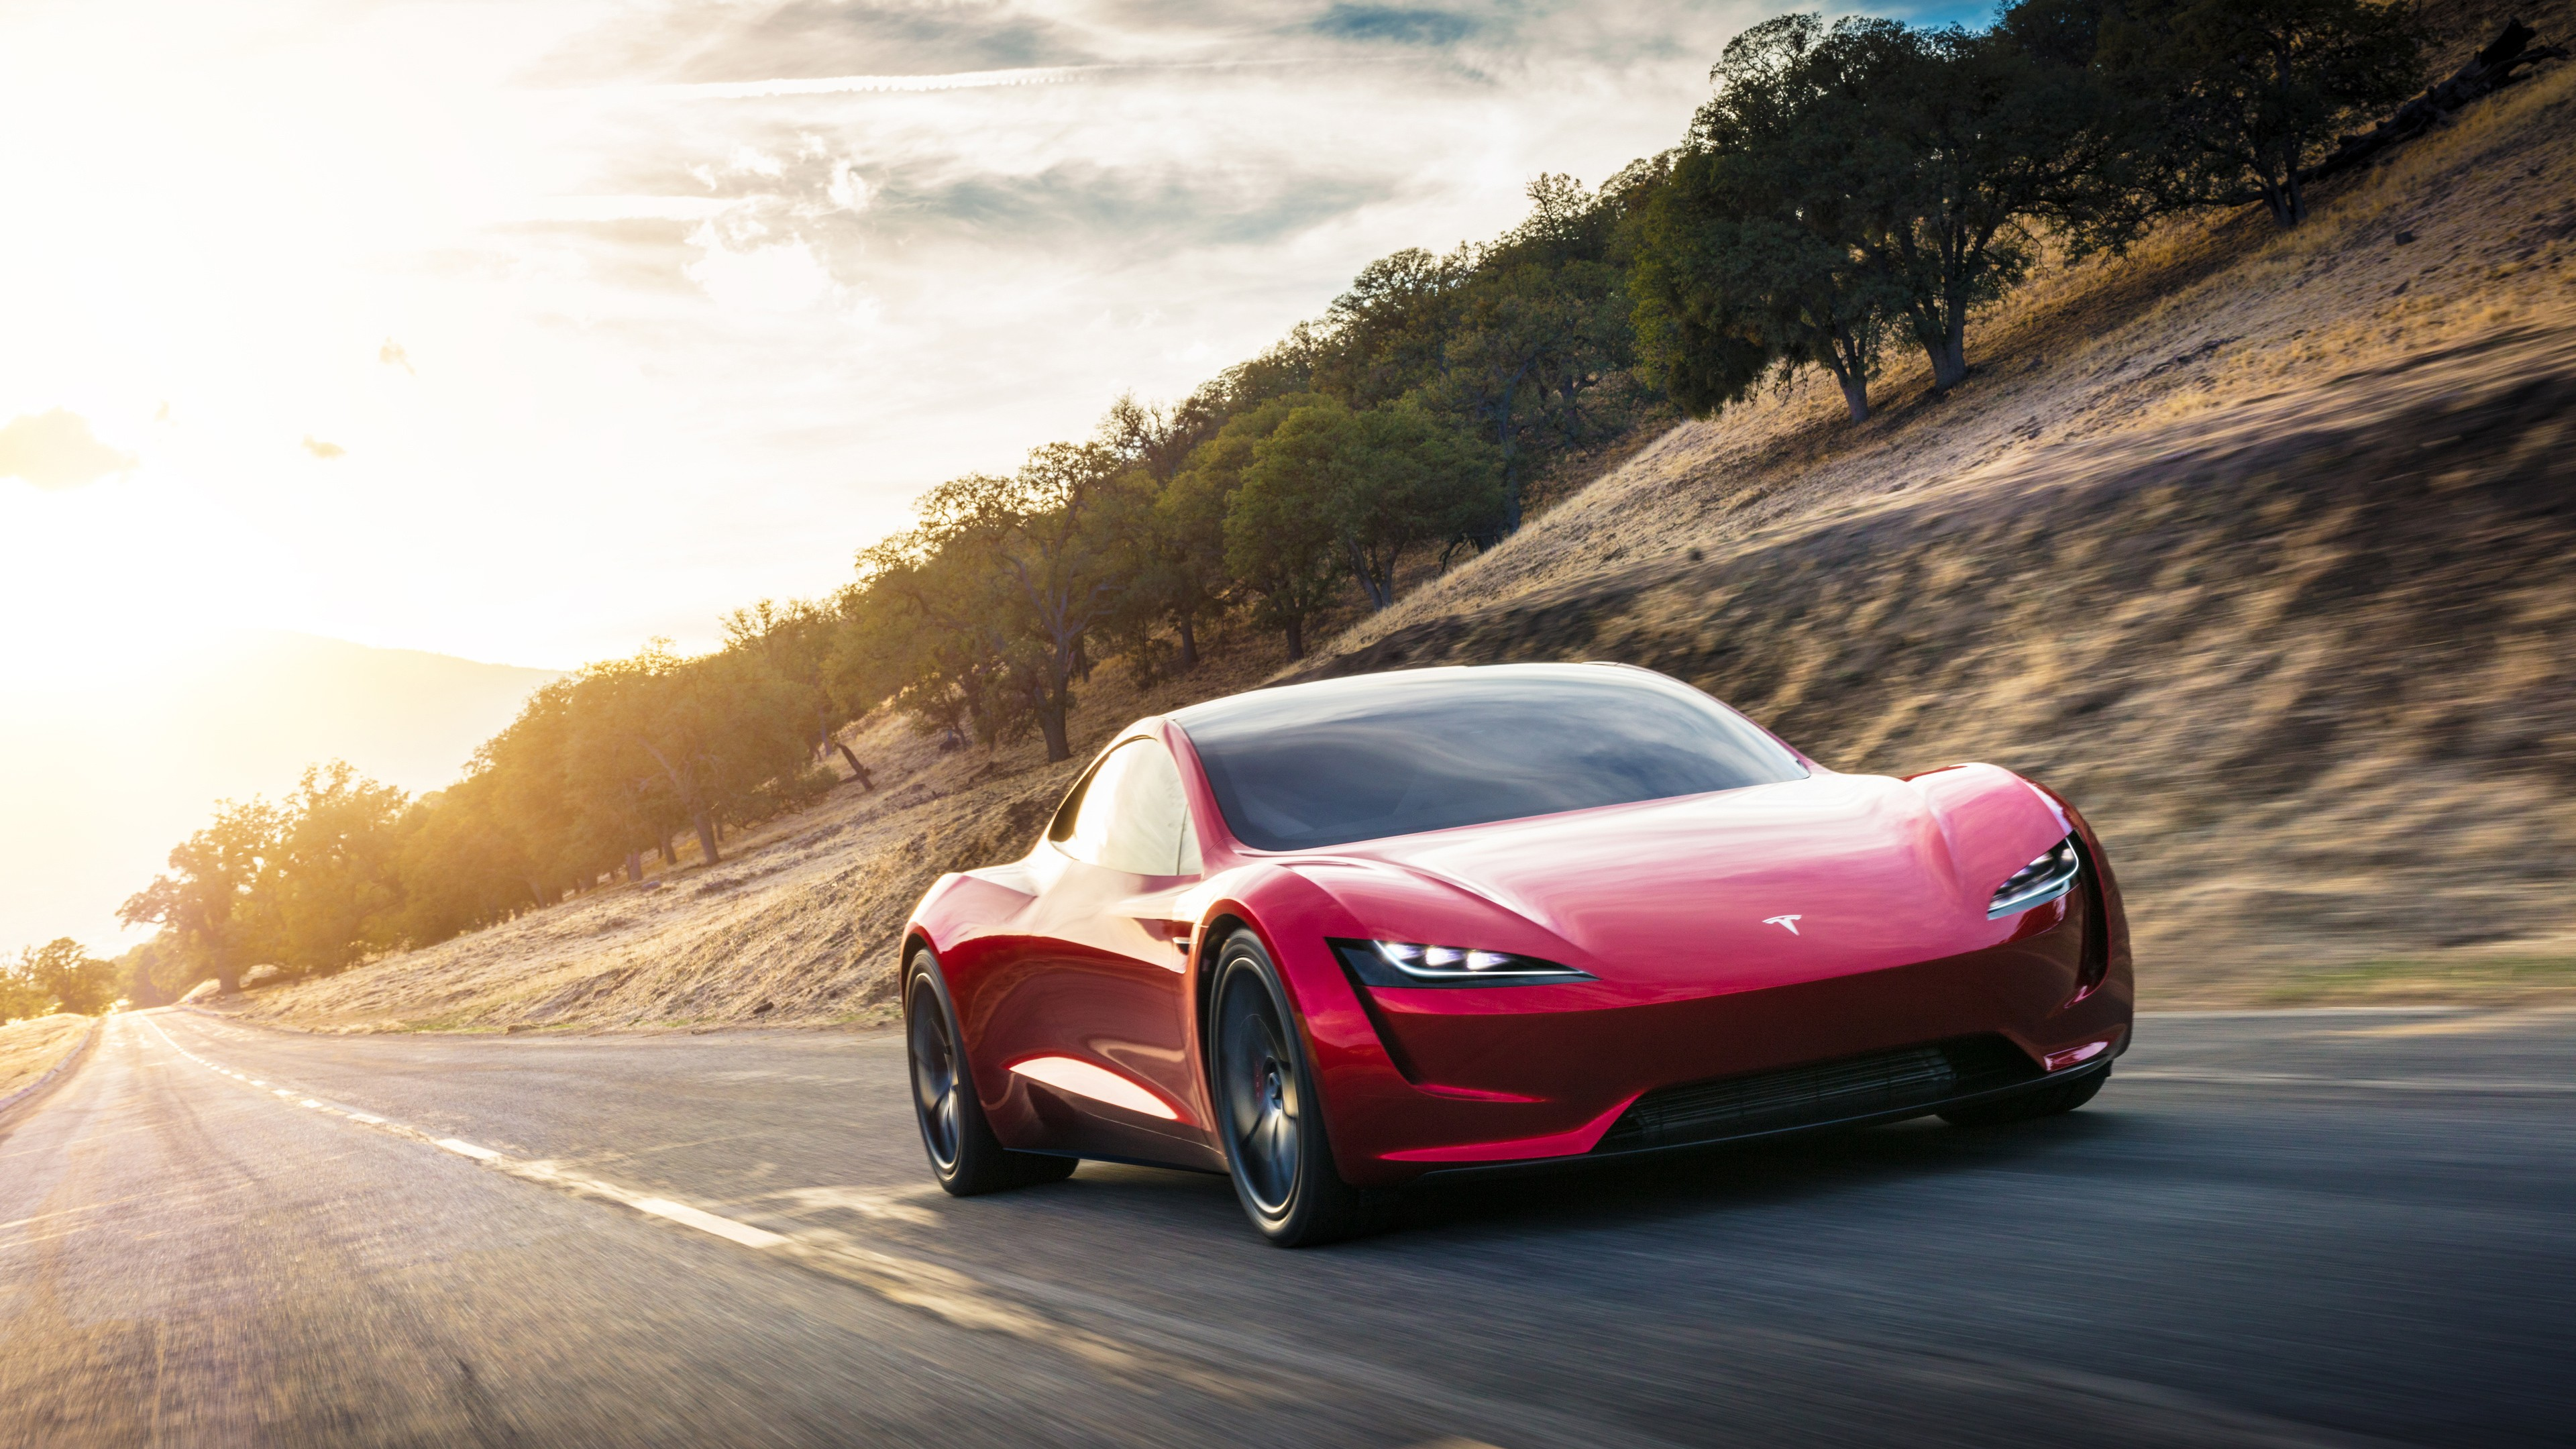 tesla - luxury cars hd theme wallpapers - top speed motors